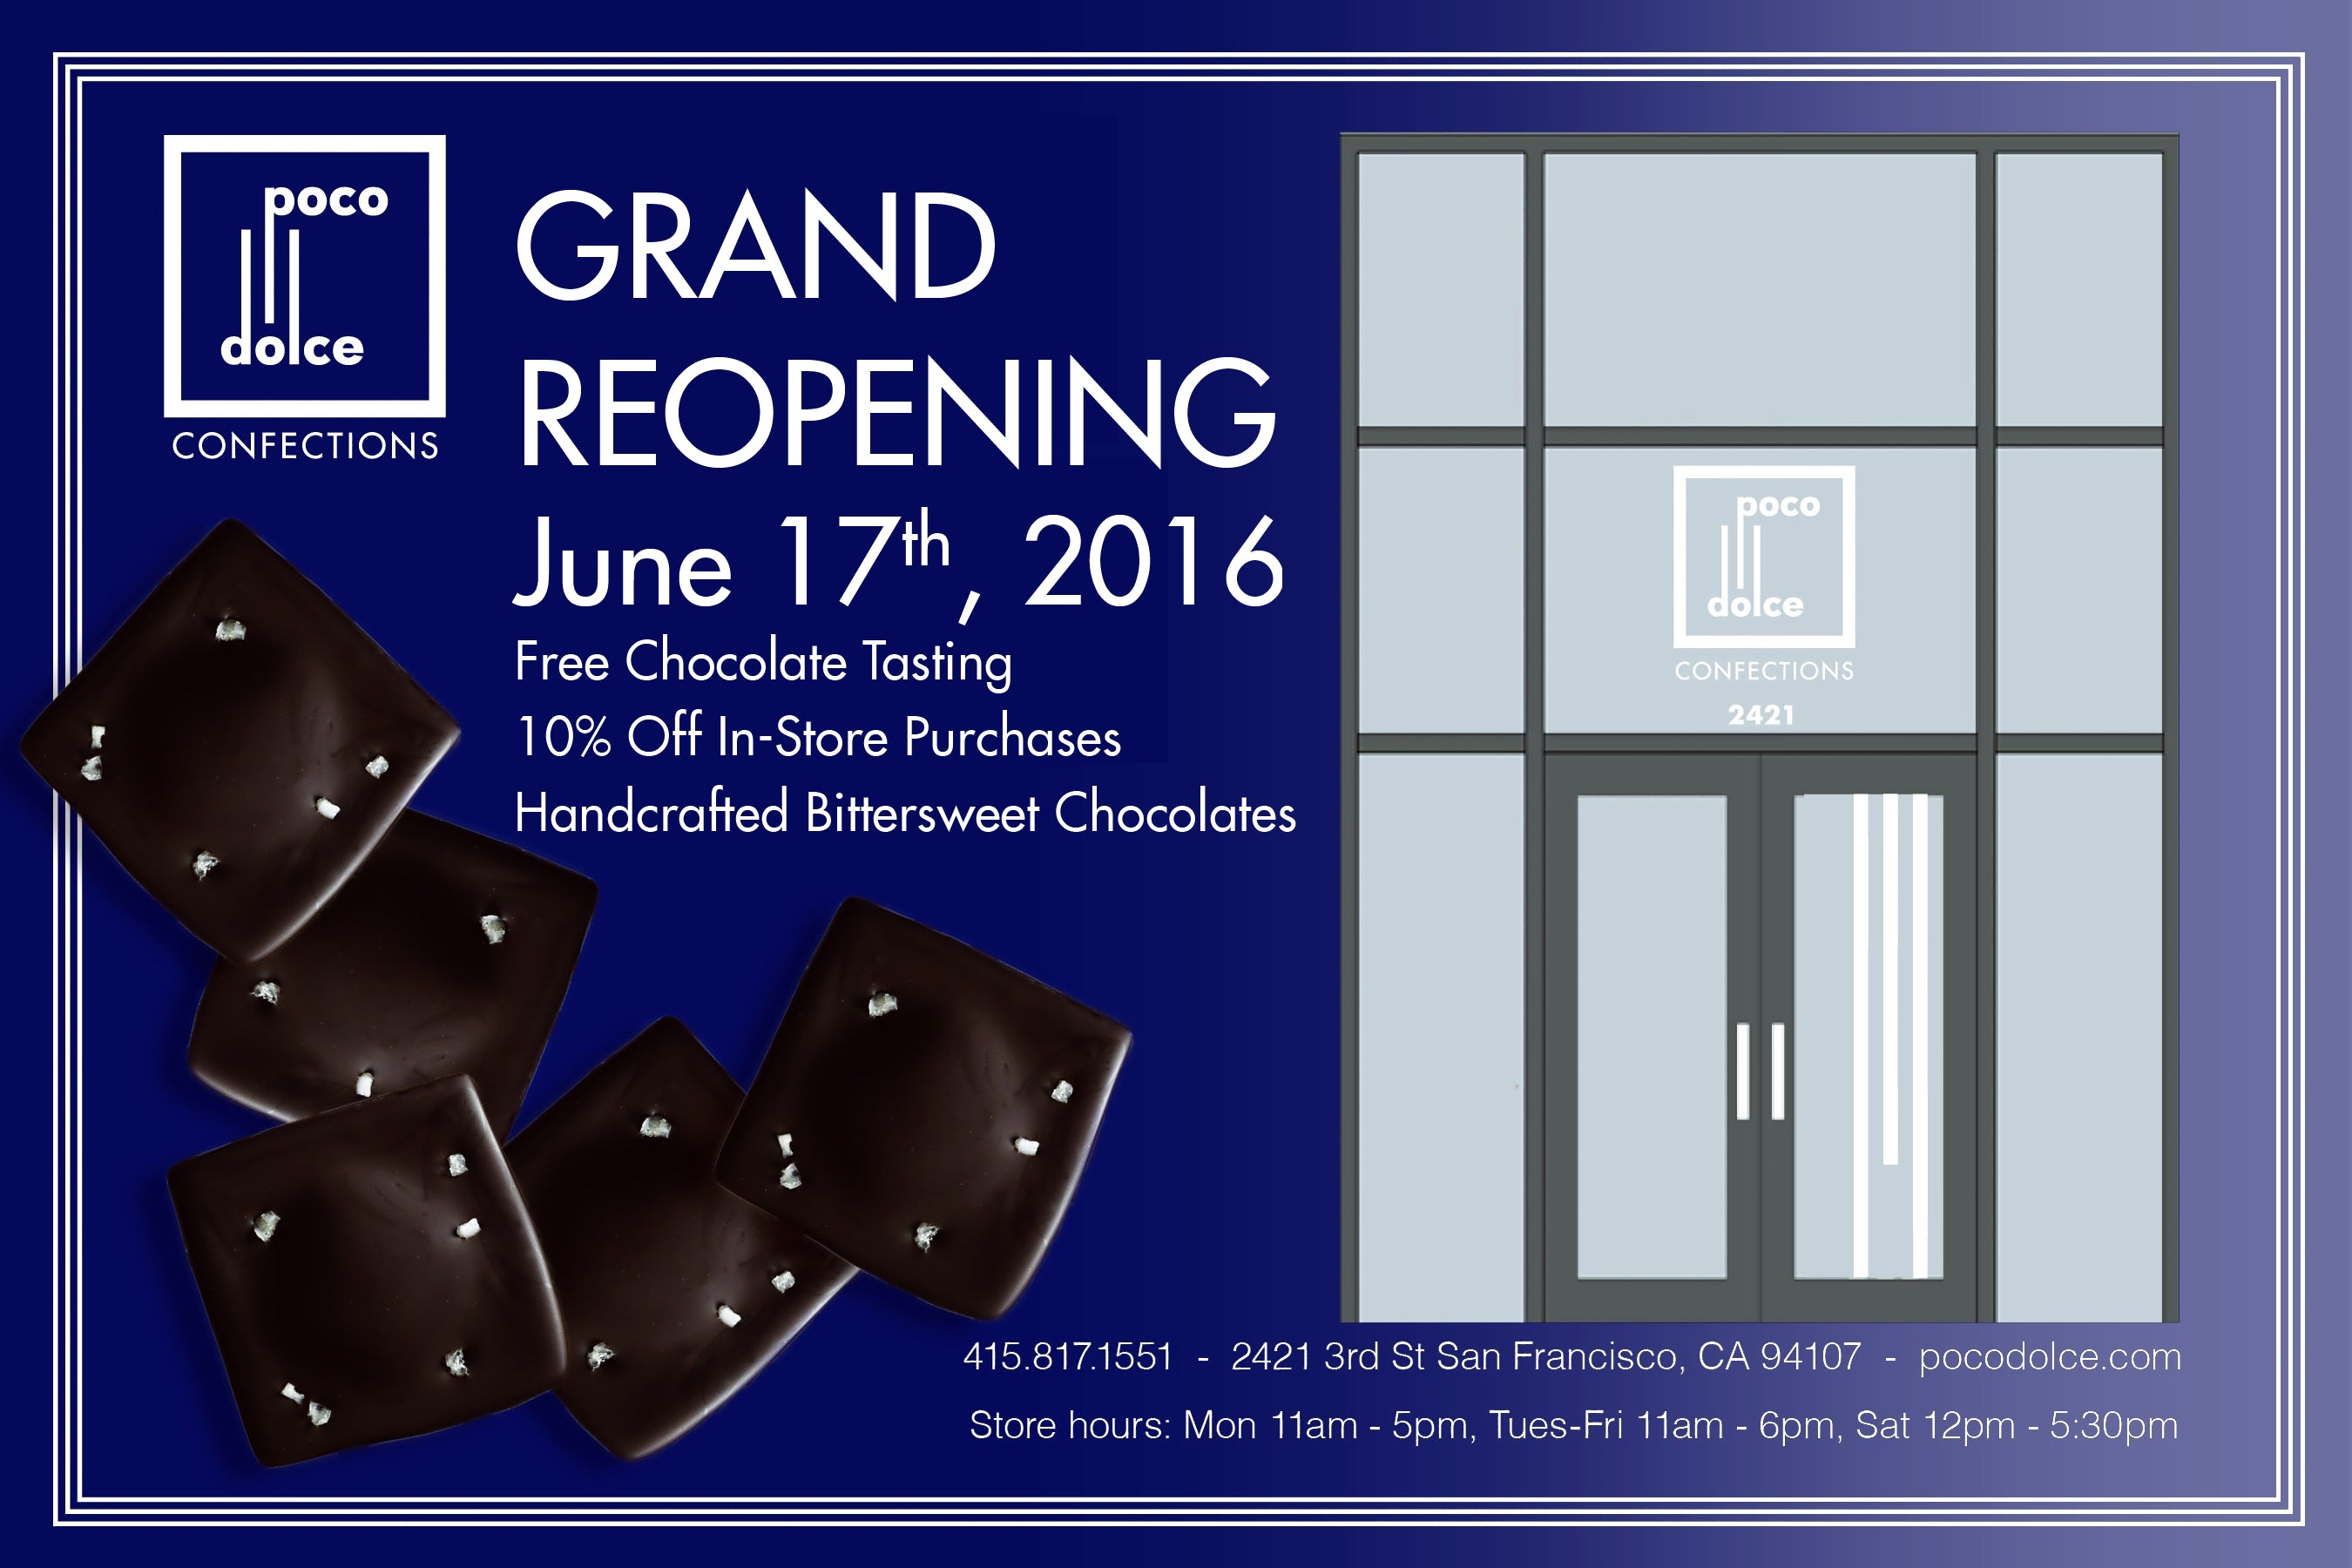 Poco Dolce's Dogpatch Store's Grand Reopening June 17th, 11am-6pm